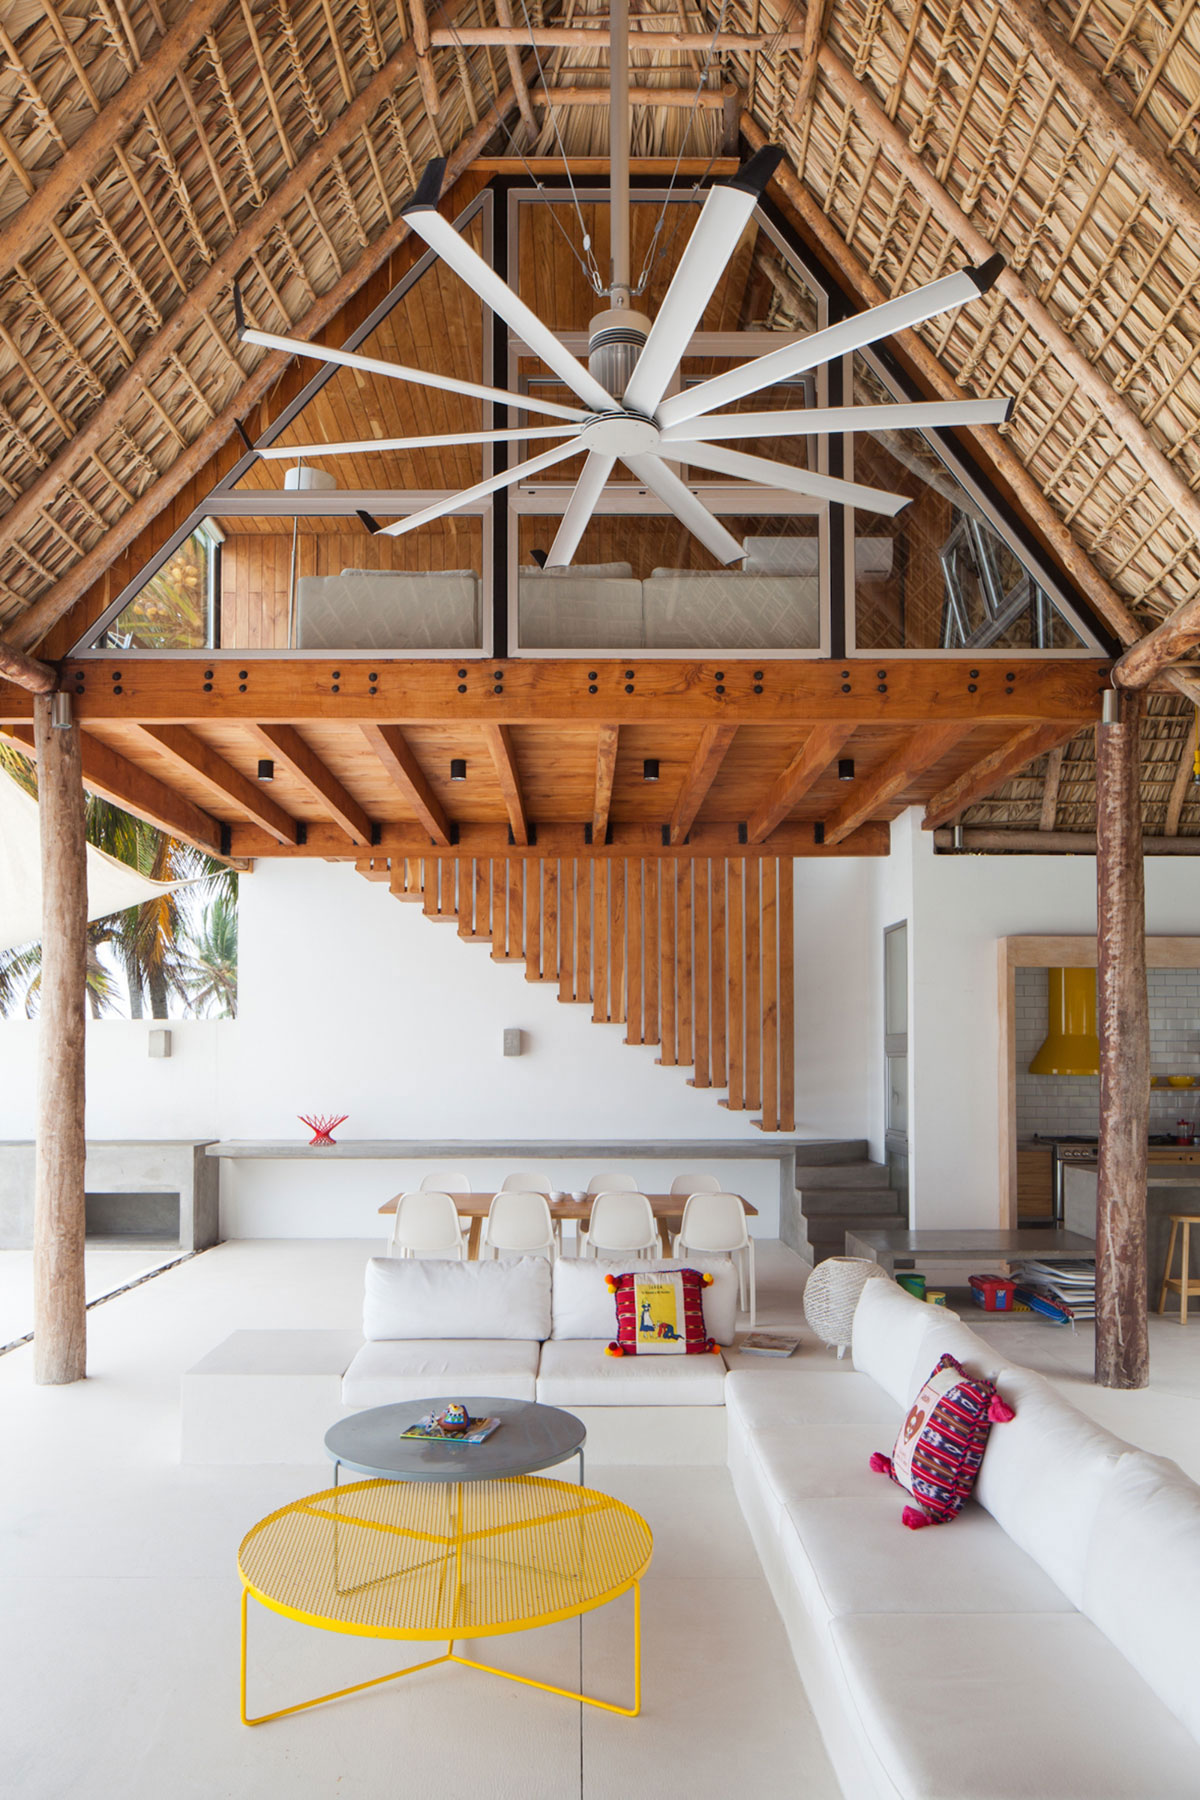 Sofas, Open Plan Living Space, Beach House in San Salvador, El Salvador